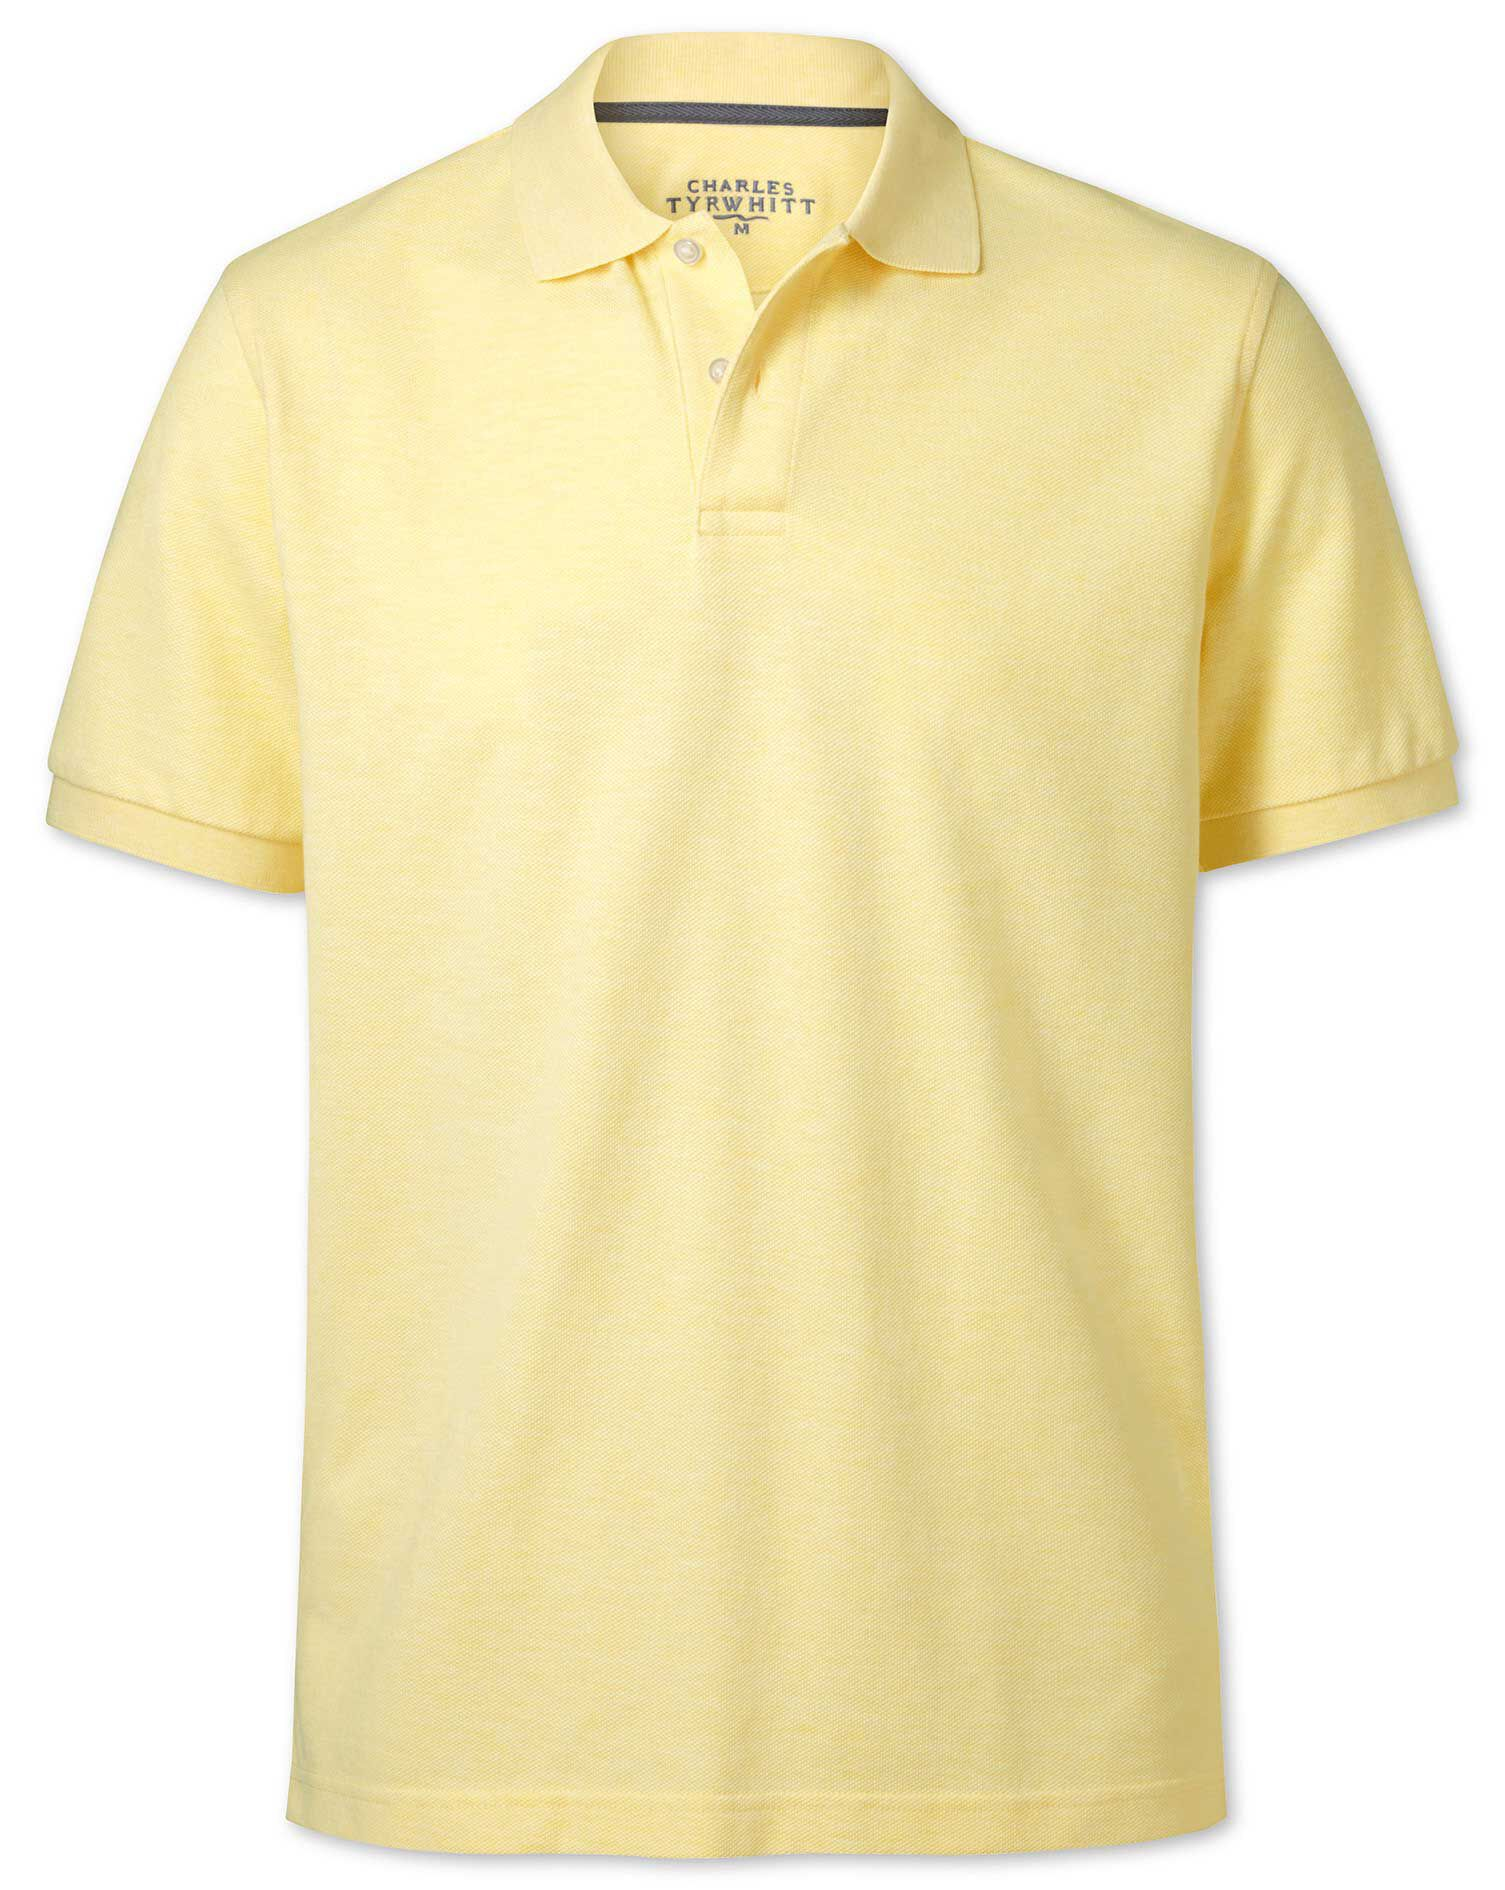 Light Yellow Pique Cotton Polo Size XL by Charles Tyrwhitt